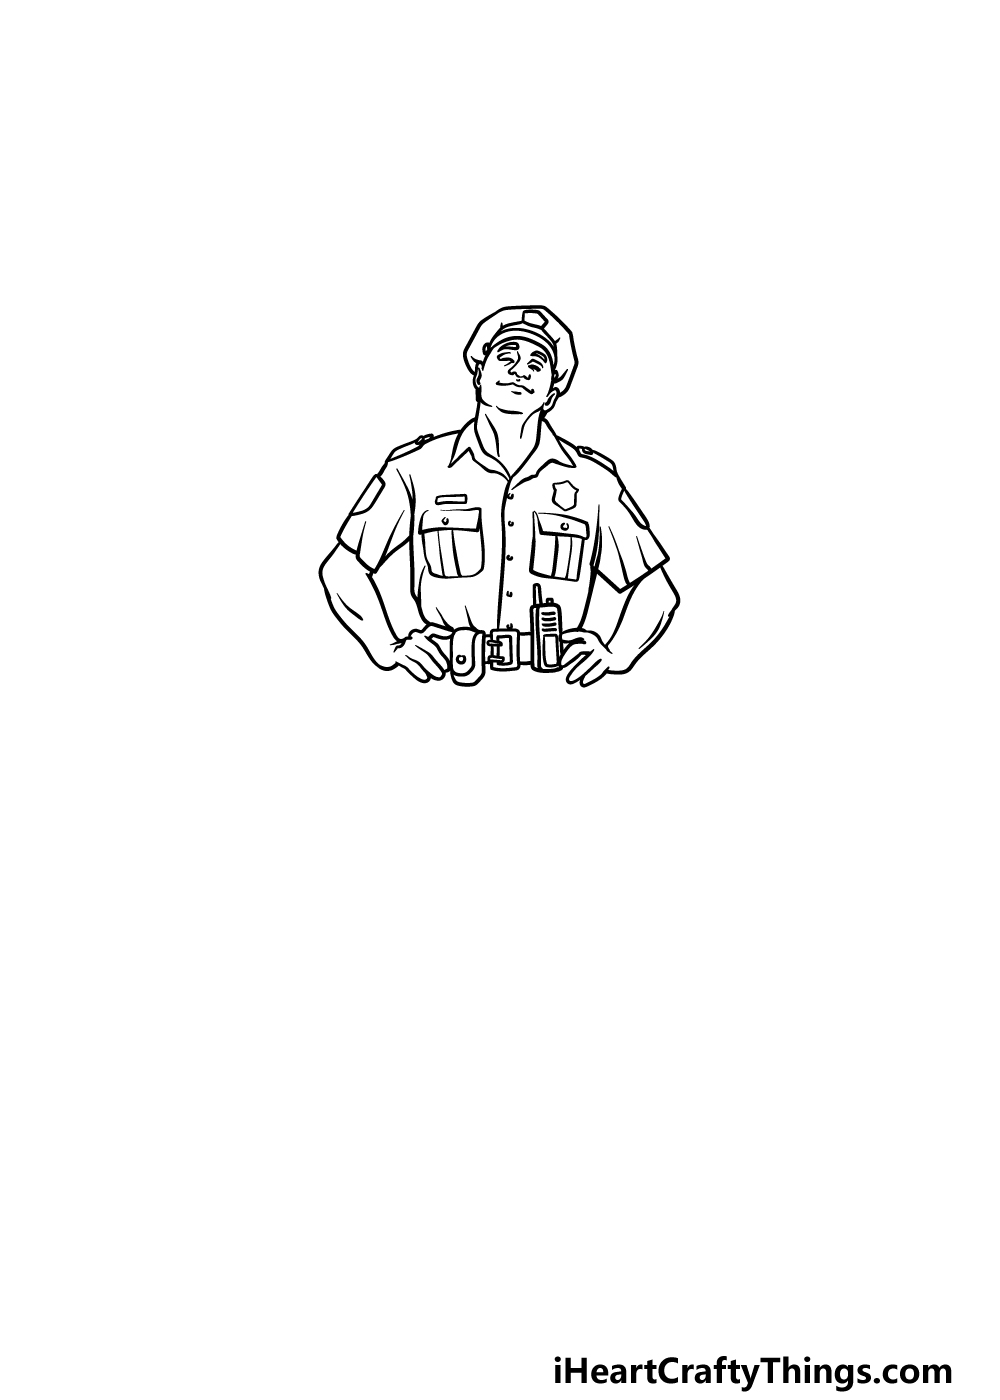 drawing a police officer step 4